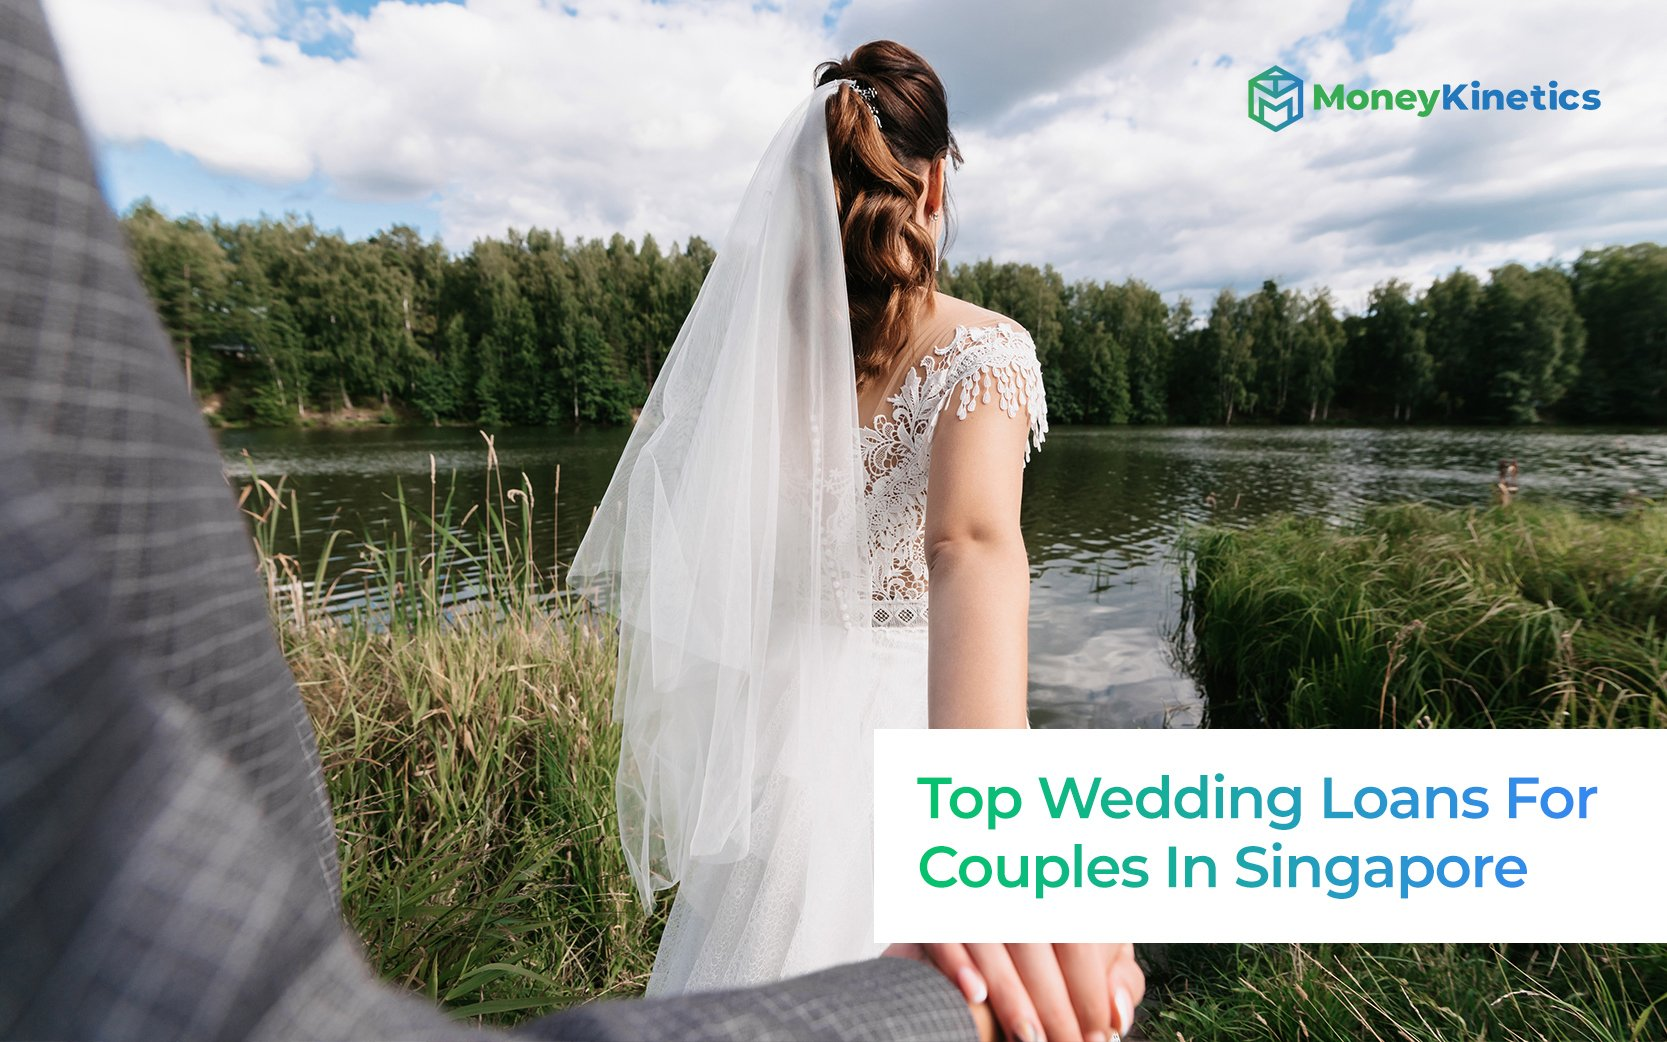 Top 7 Wedding Loans For Couples In Singapore To Cover All Costs (DBS, UOB & More)